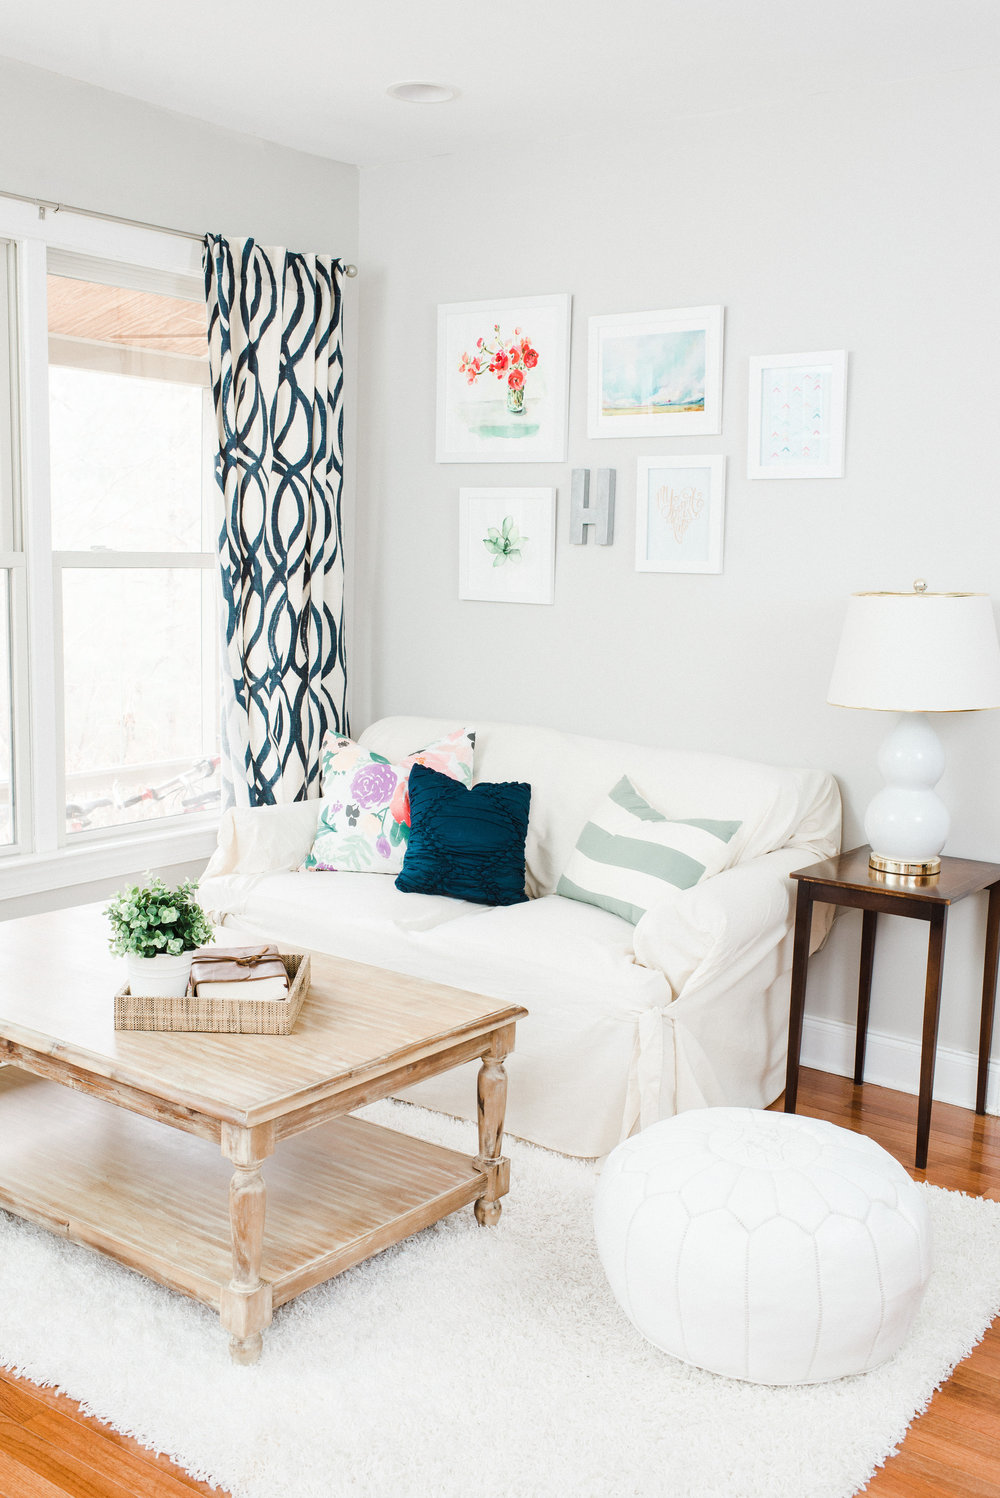 50 Best Small Living Room Design Ideas for 2020 on Decorating Small Living Room  id=43399